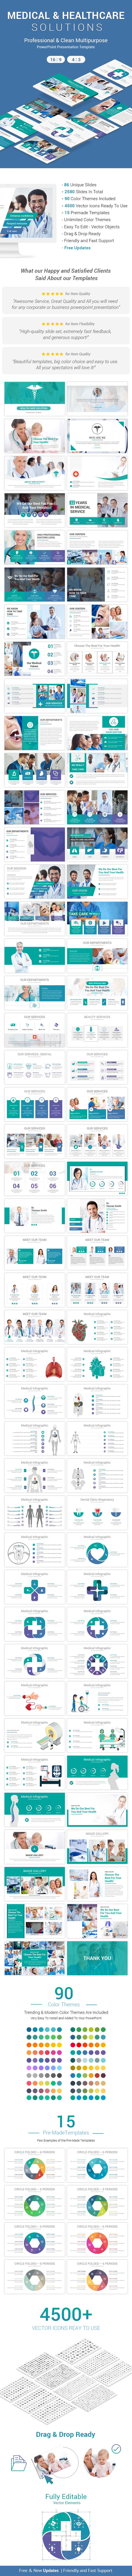 Creative Medical And Healthcare Powerpoint Template That Contains An